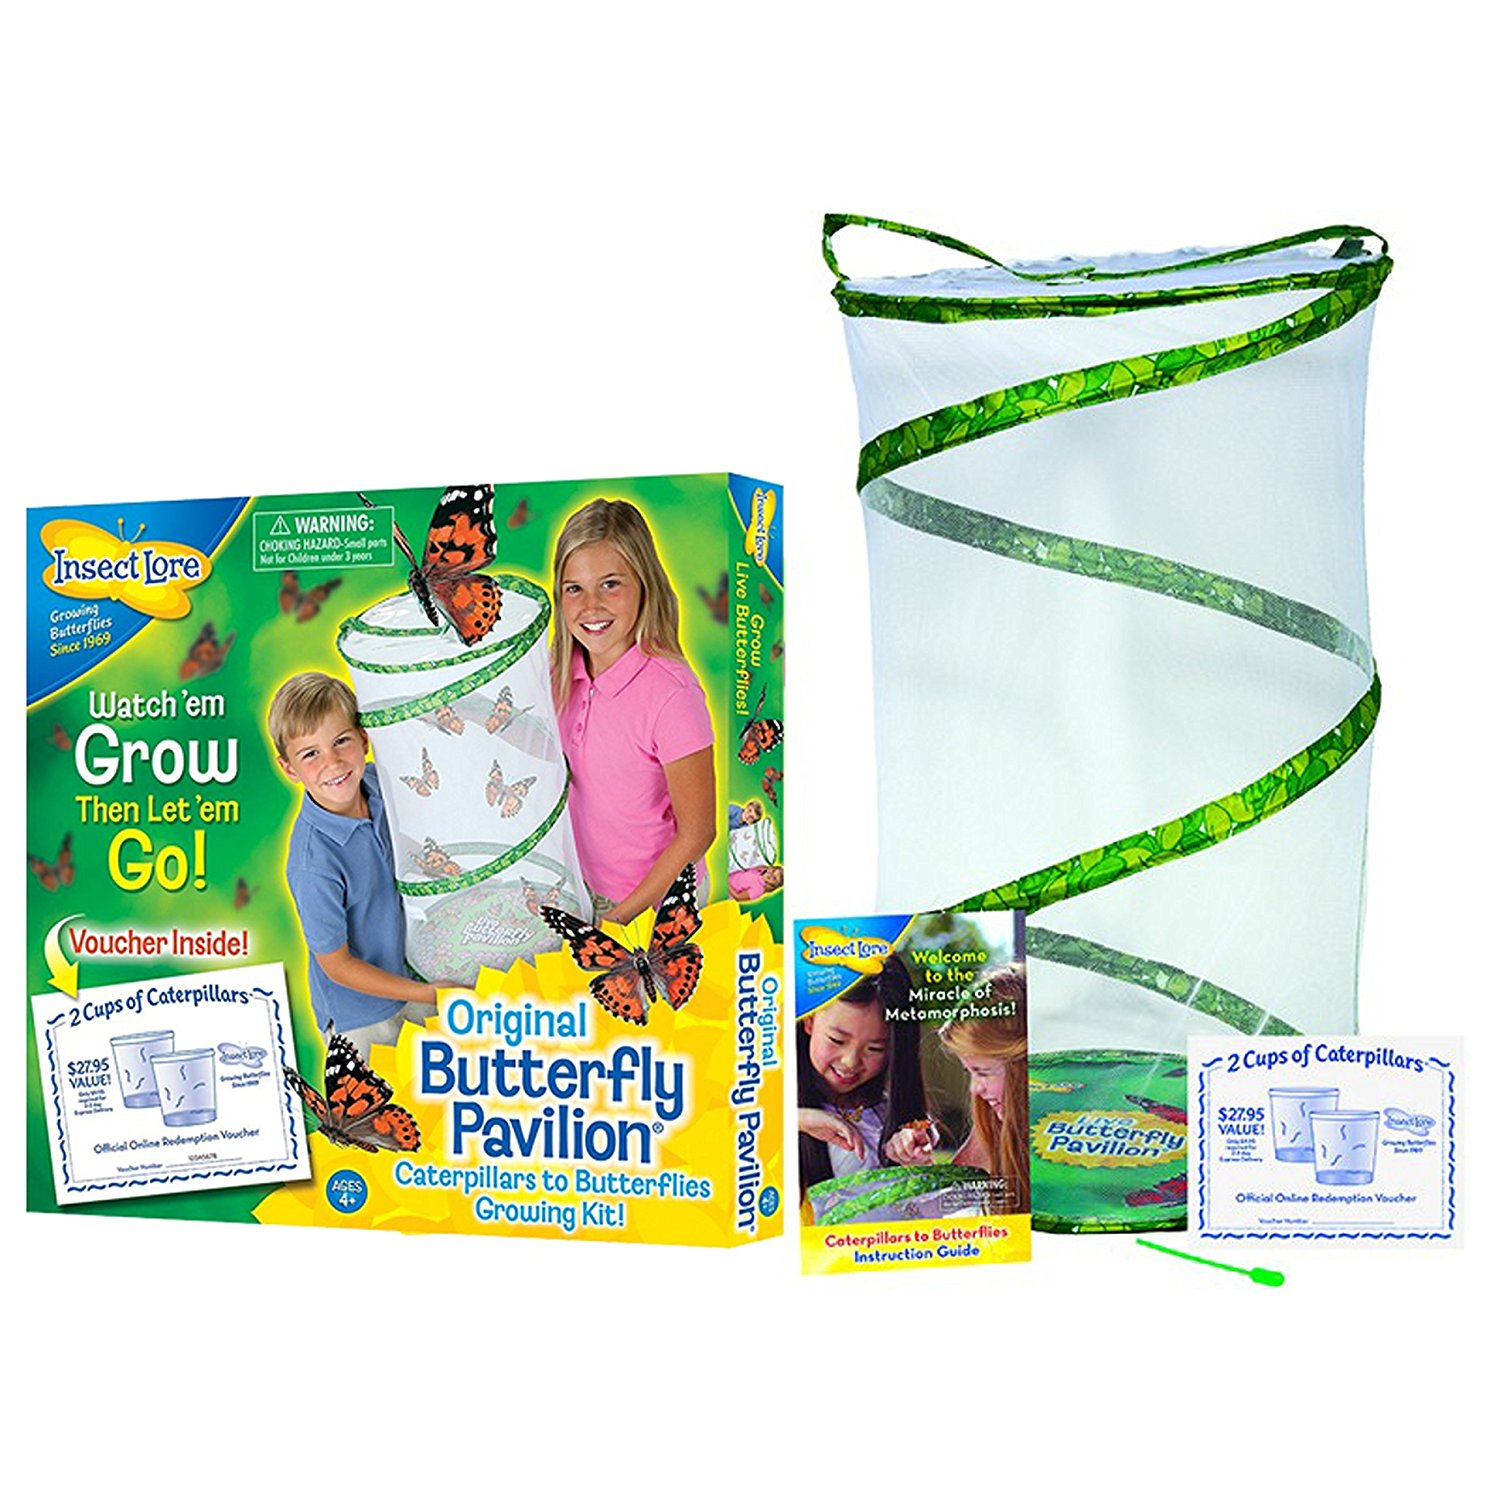 Butterfly Pavilion Large Habitat Hatching Kit With Voucher For 10 Caterpillars, Caterpillars become... by